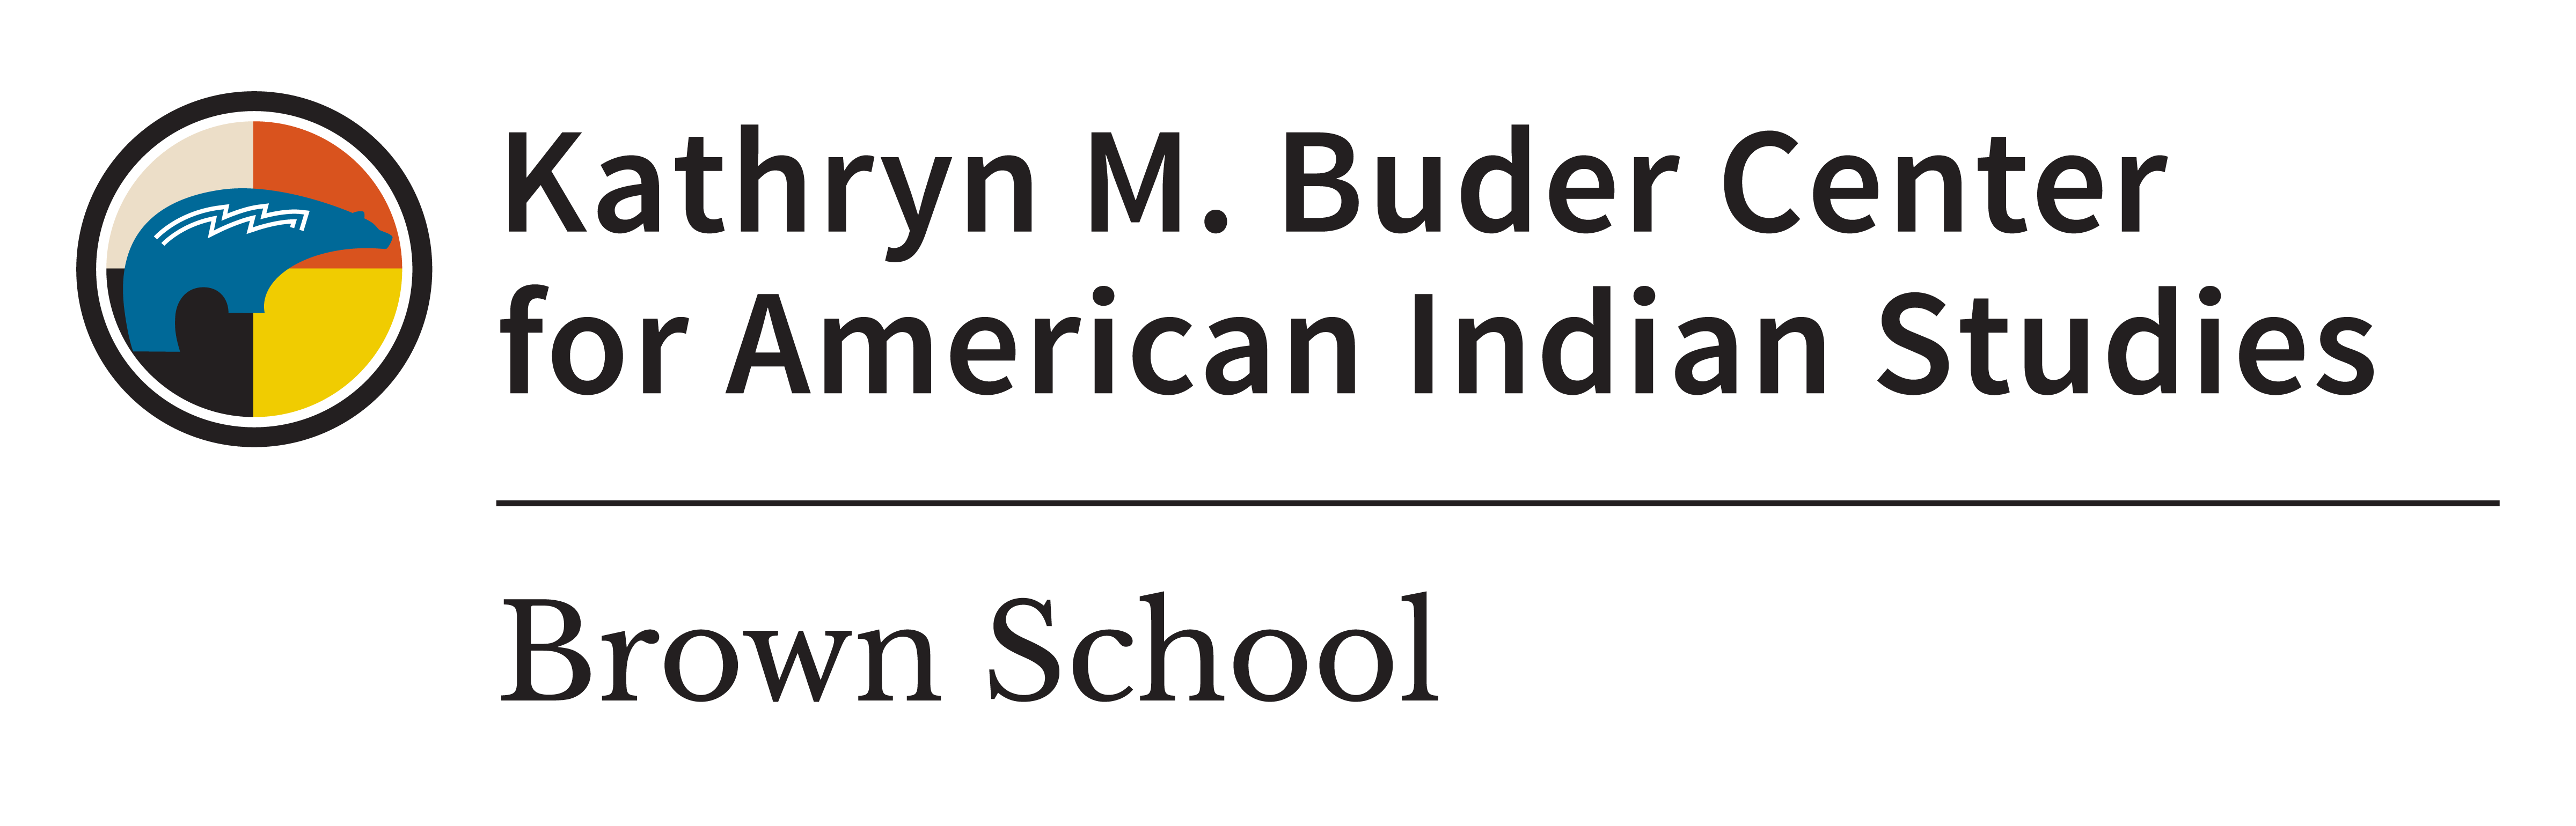 Kathryn M. Buder Center for American Indian Studies